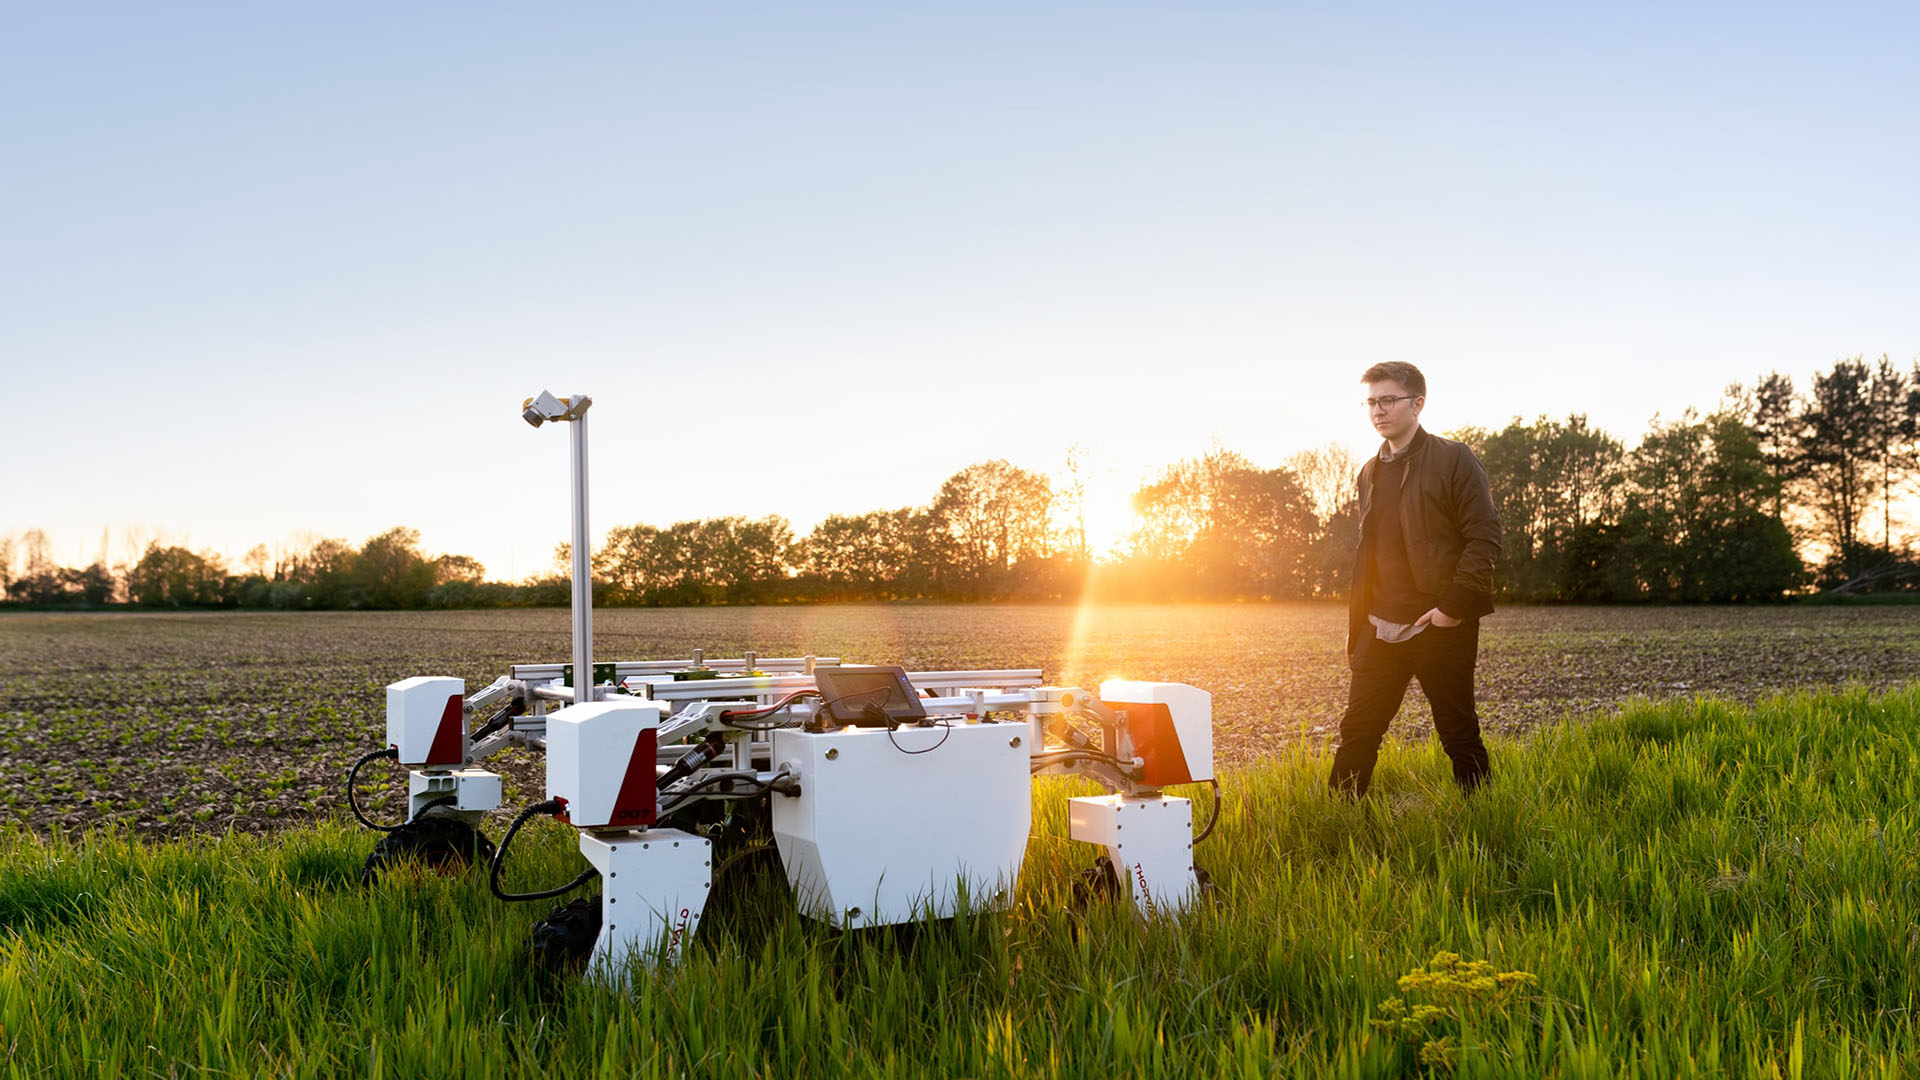 A person standing in a lush green field next to new farming equipment. the sun it setting behind them